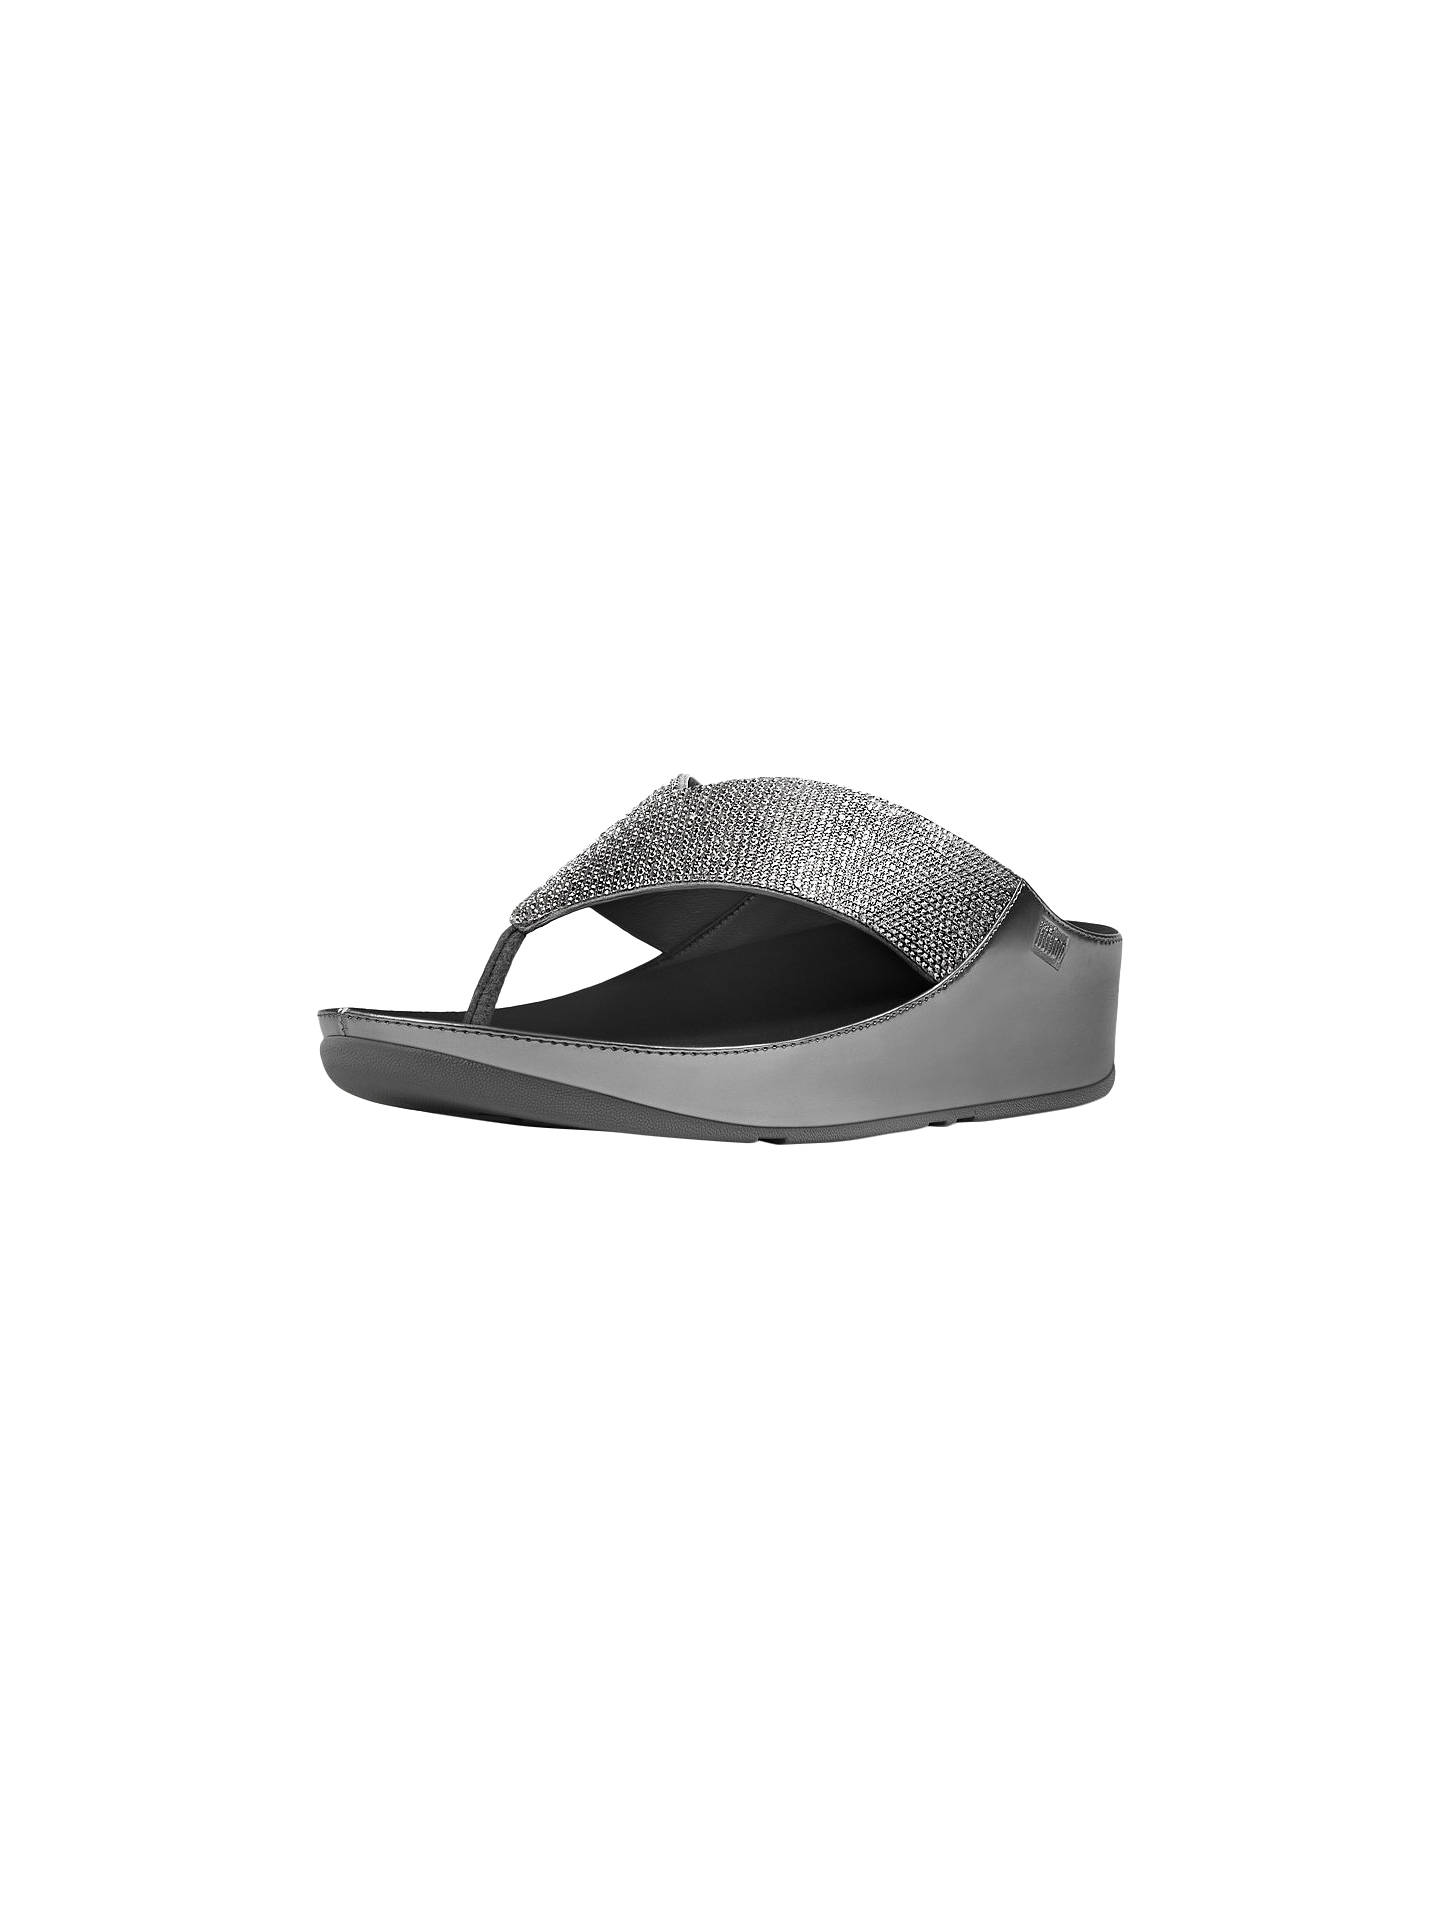 c7a2f74385ad9a Buy FitFlop Crystall Toe Post Sandals